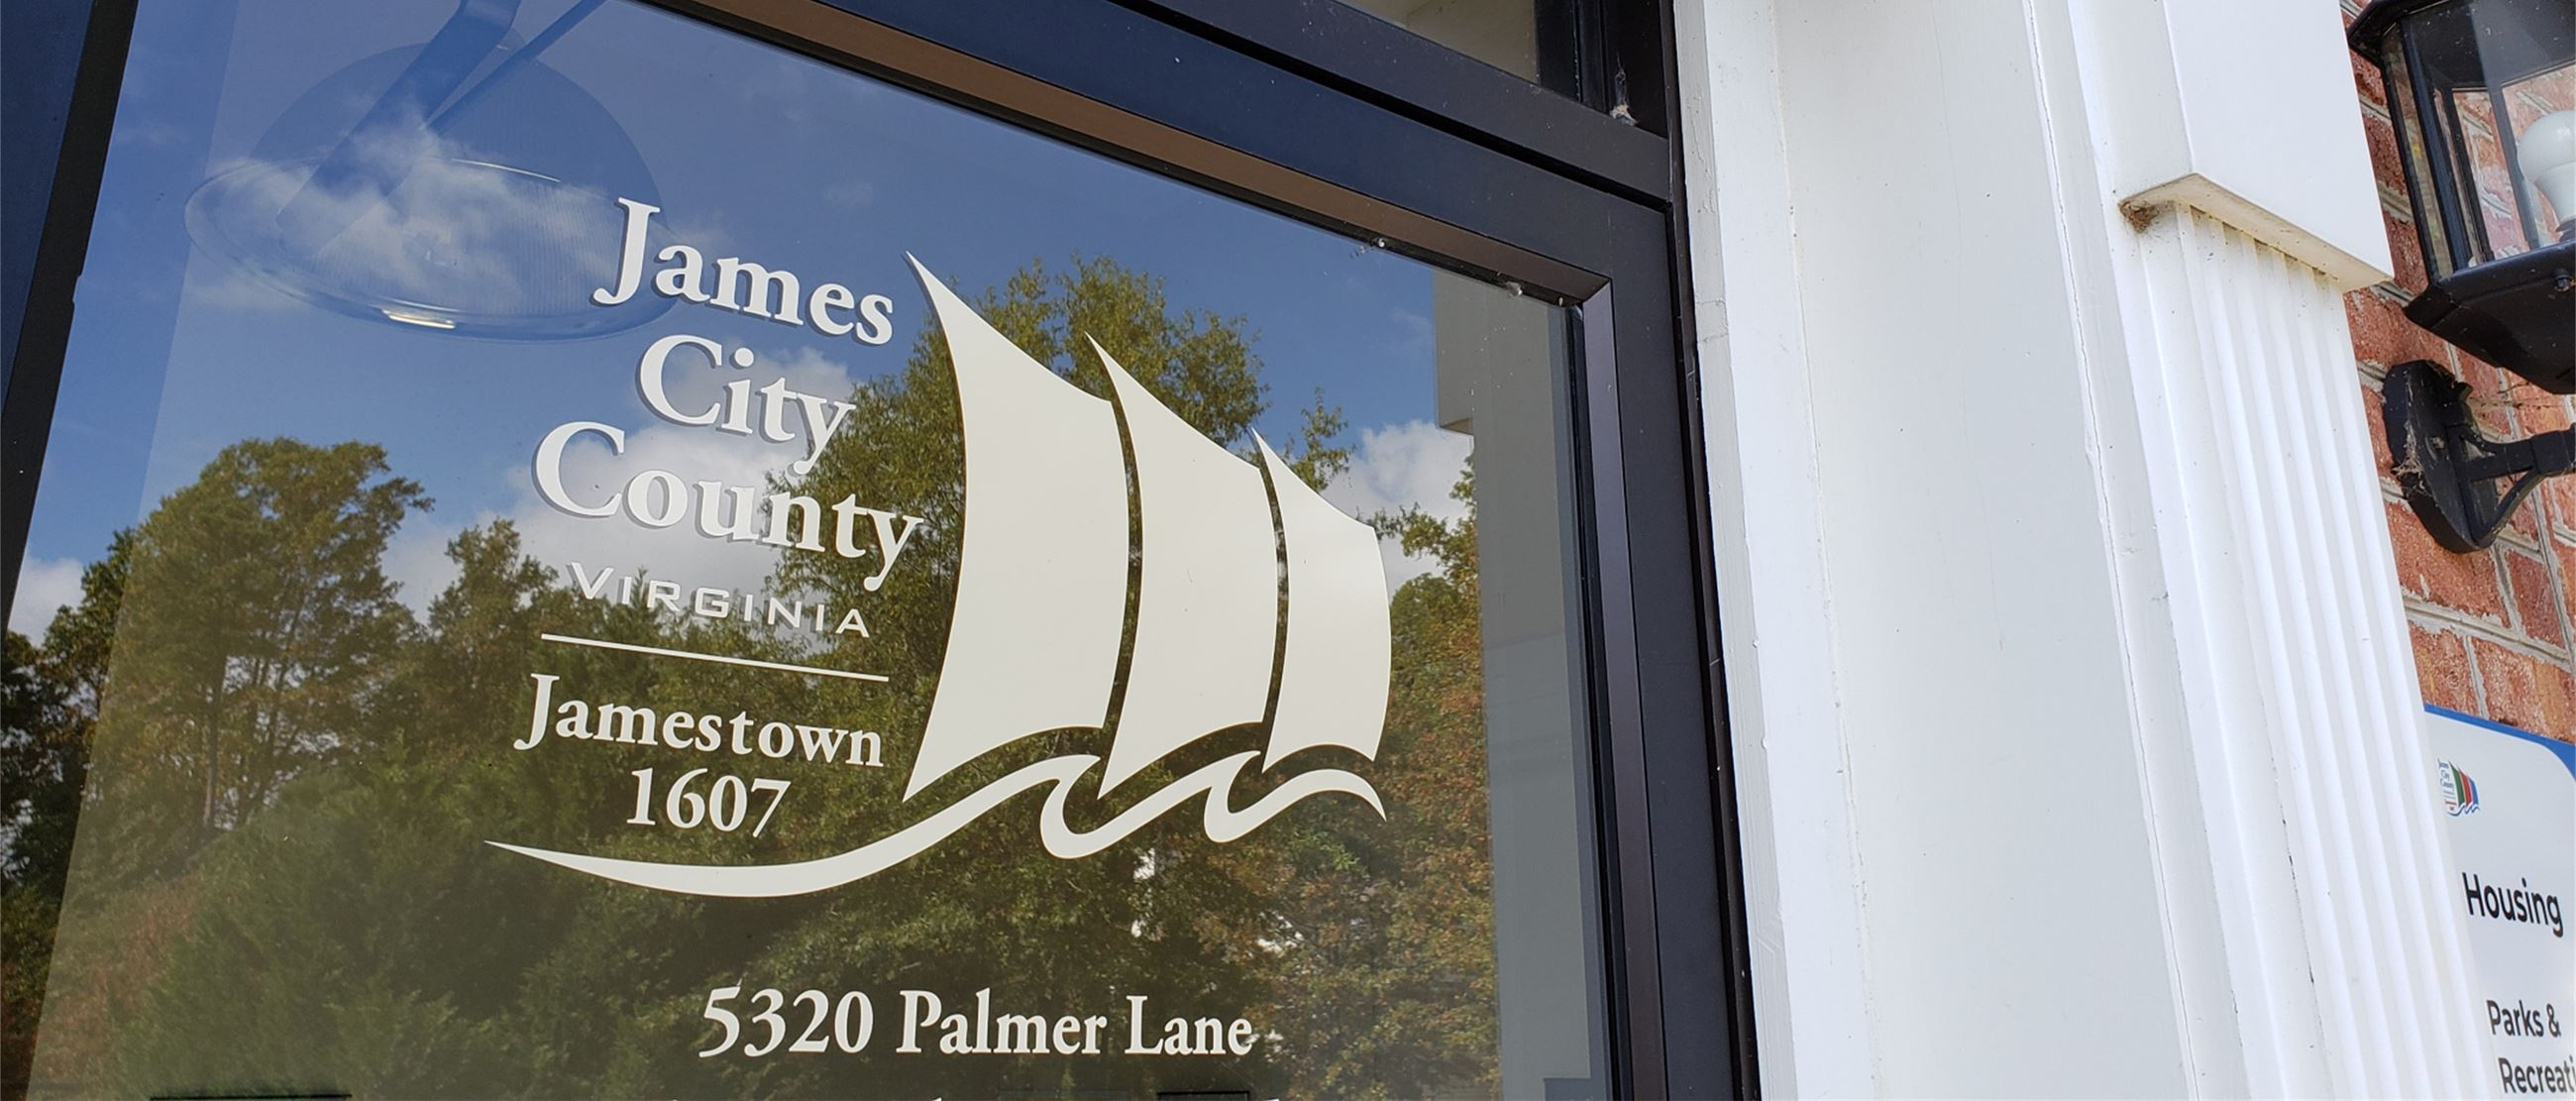 Glass Door with James City County logo and 5320 Palmer Lane